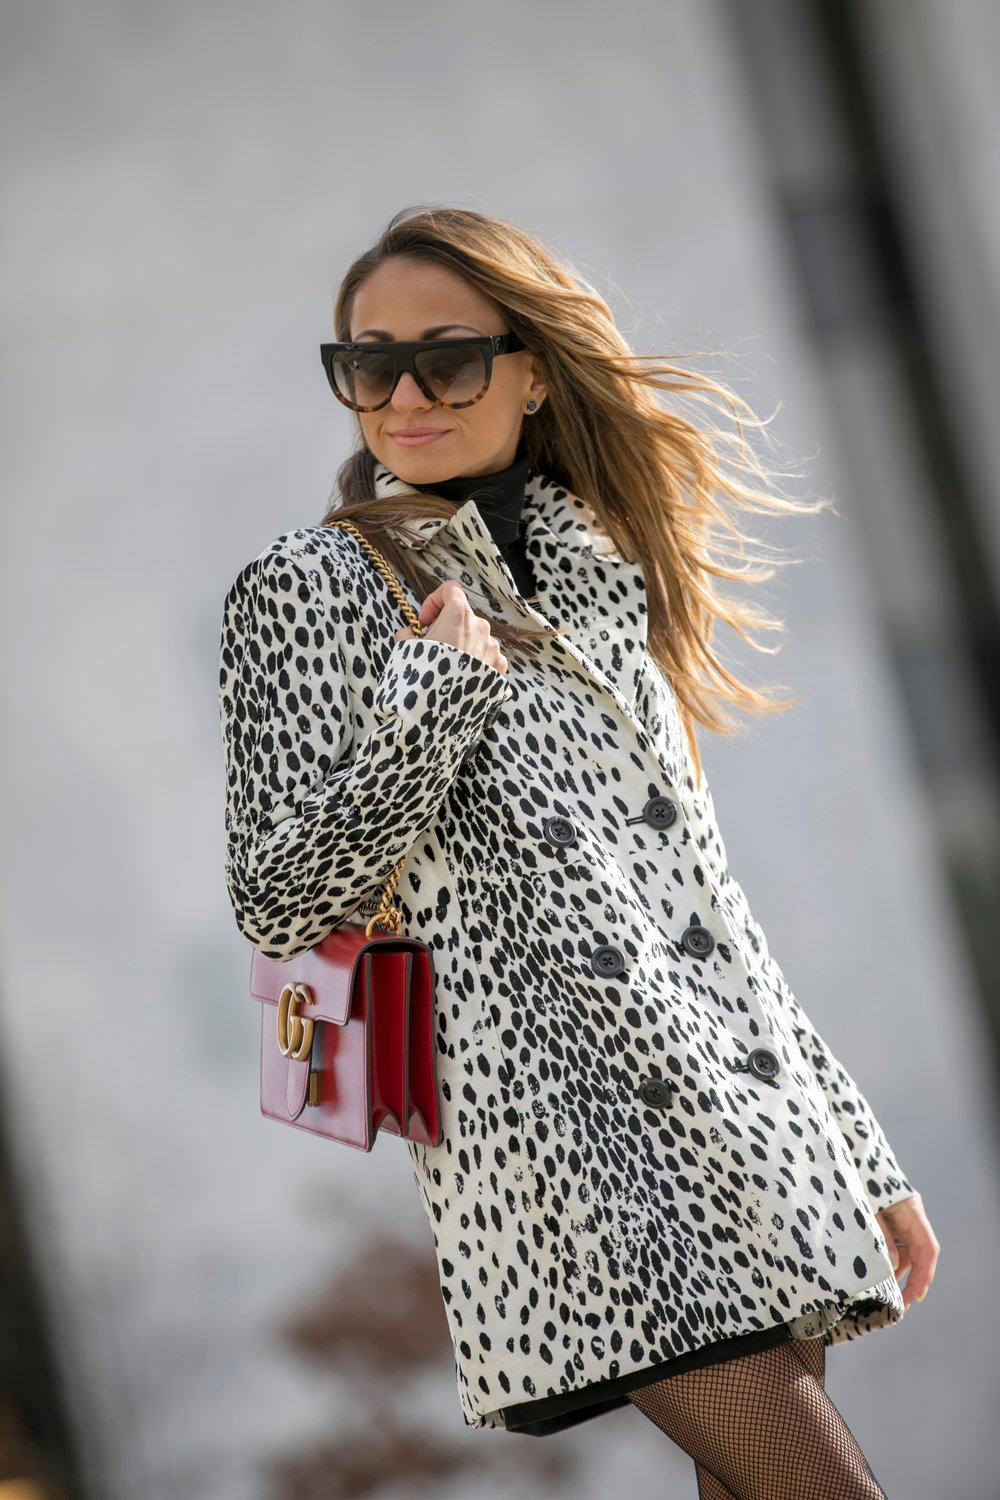 Gucci Marmont bag and gucci booties paired with a leopard free people coat